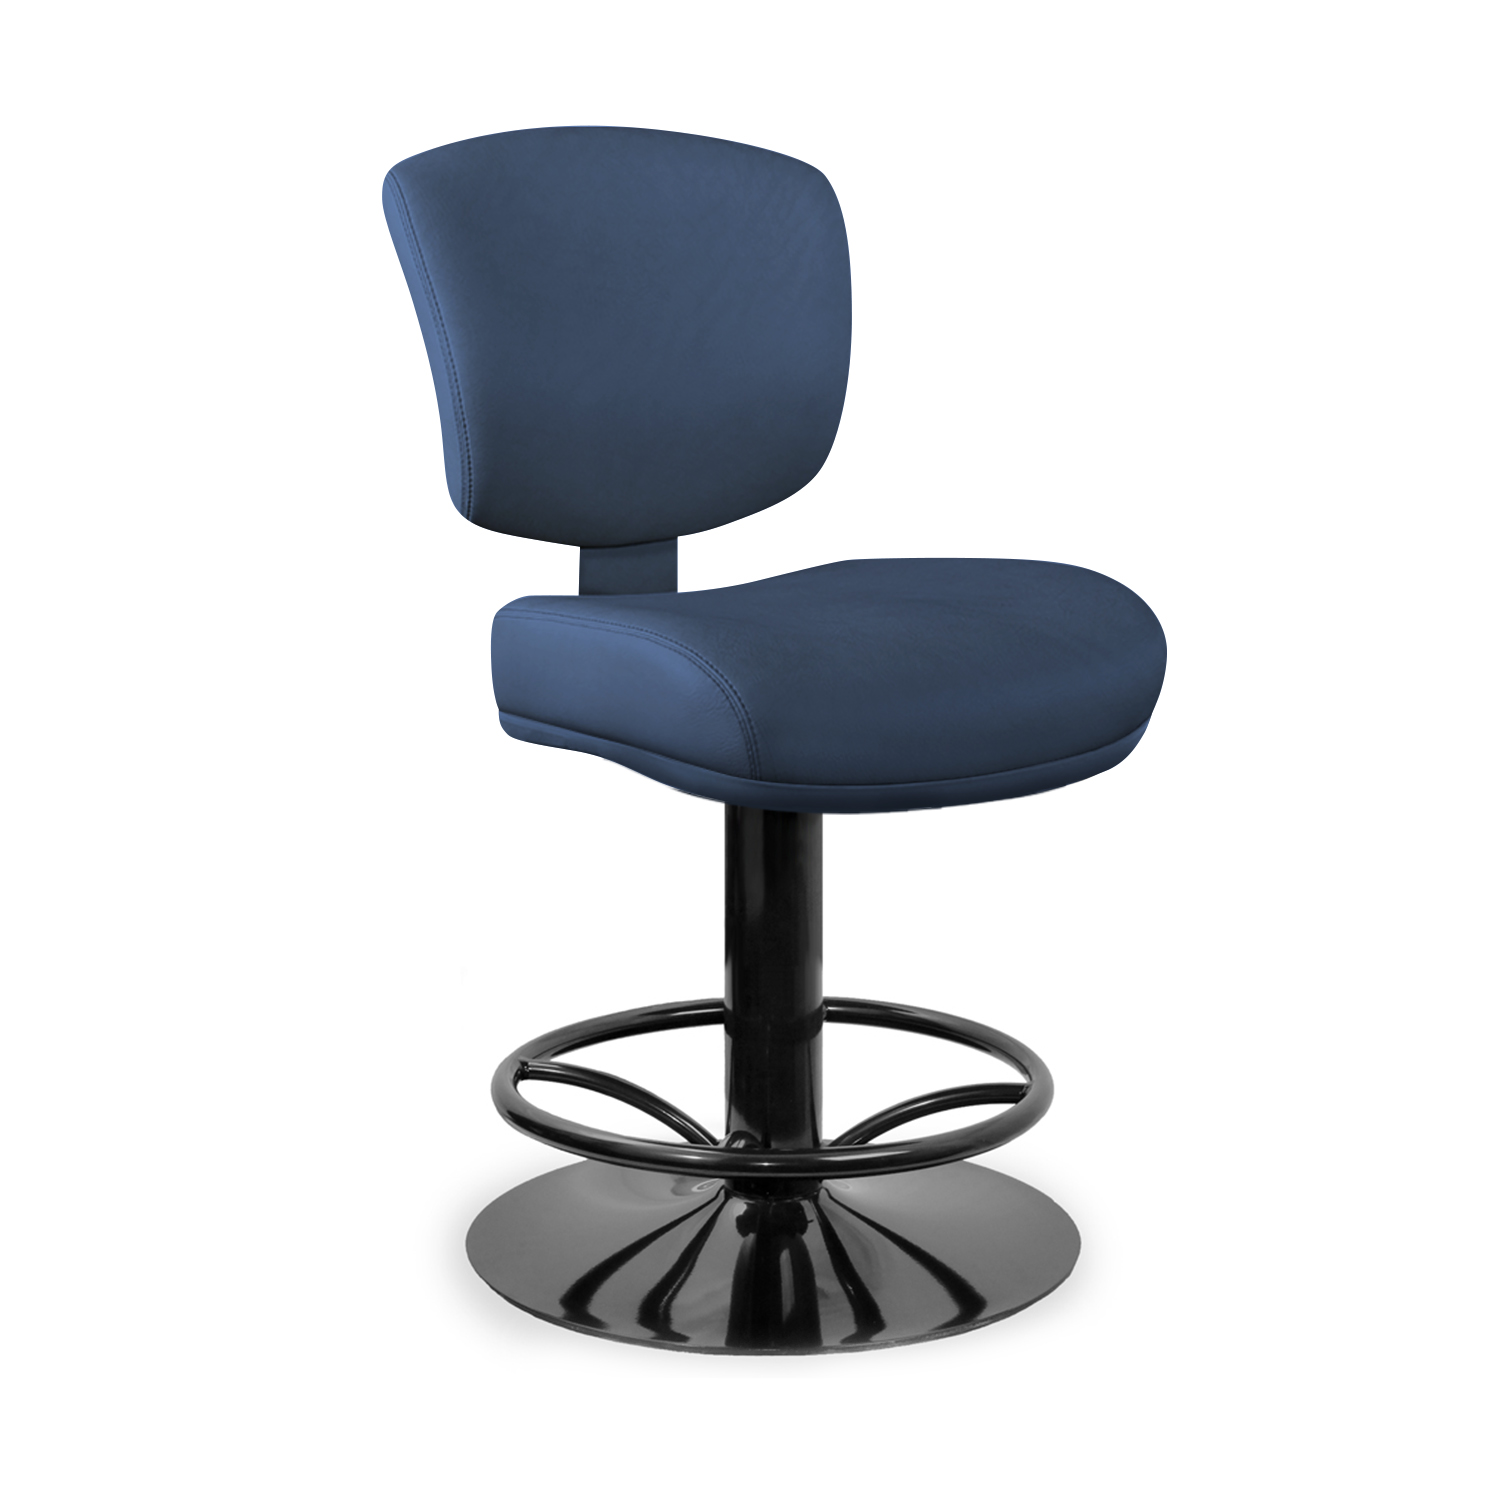 Fixed Pedestal with 4104 Curved Spoke Aluminum Footrest